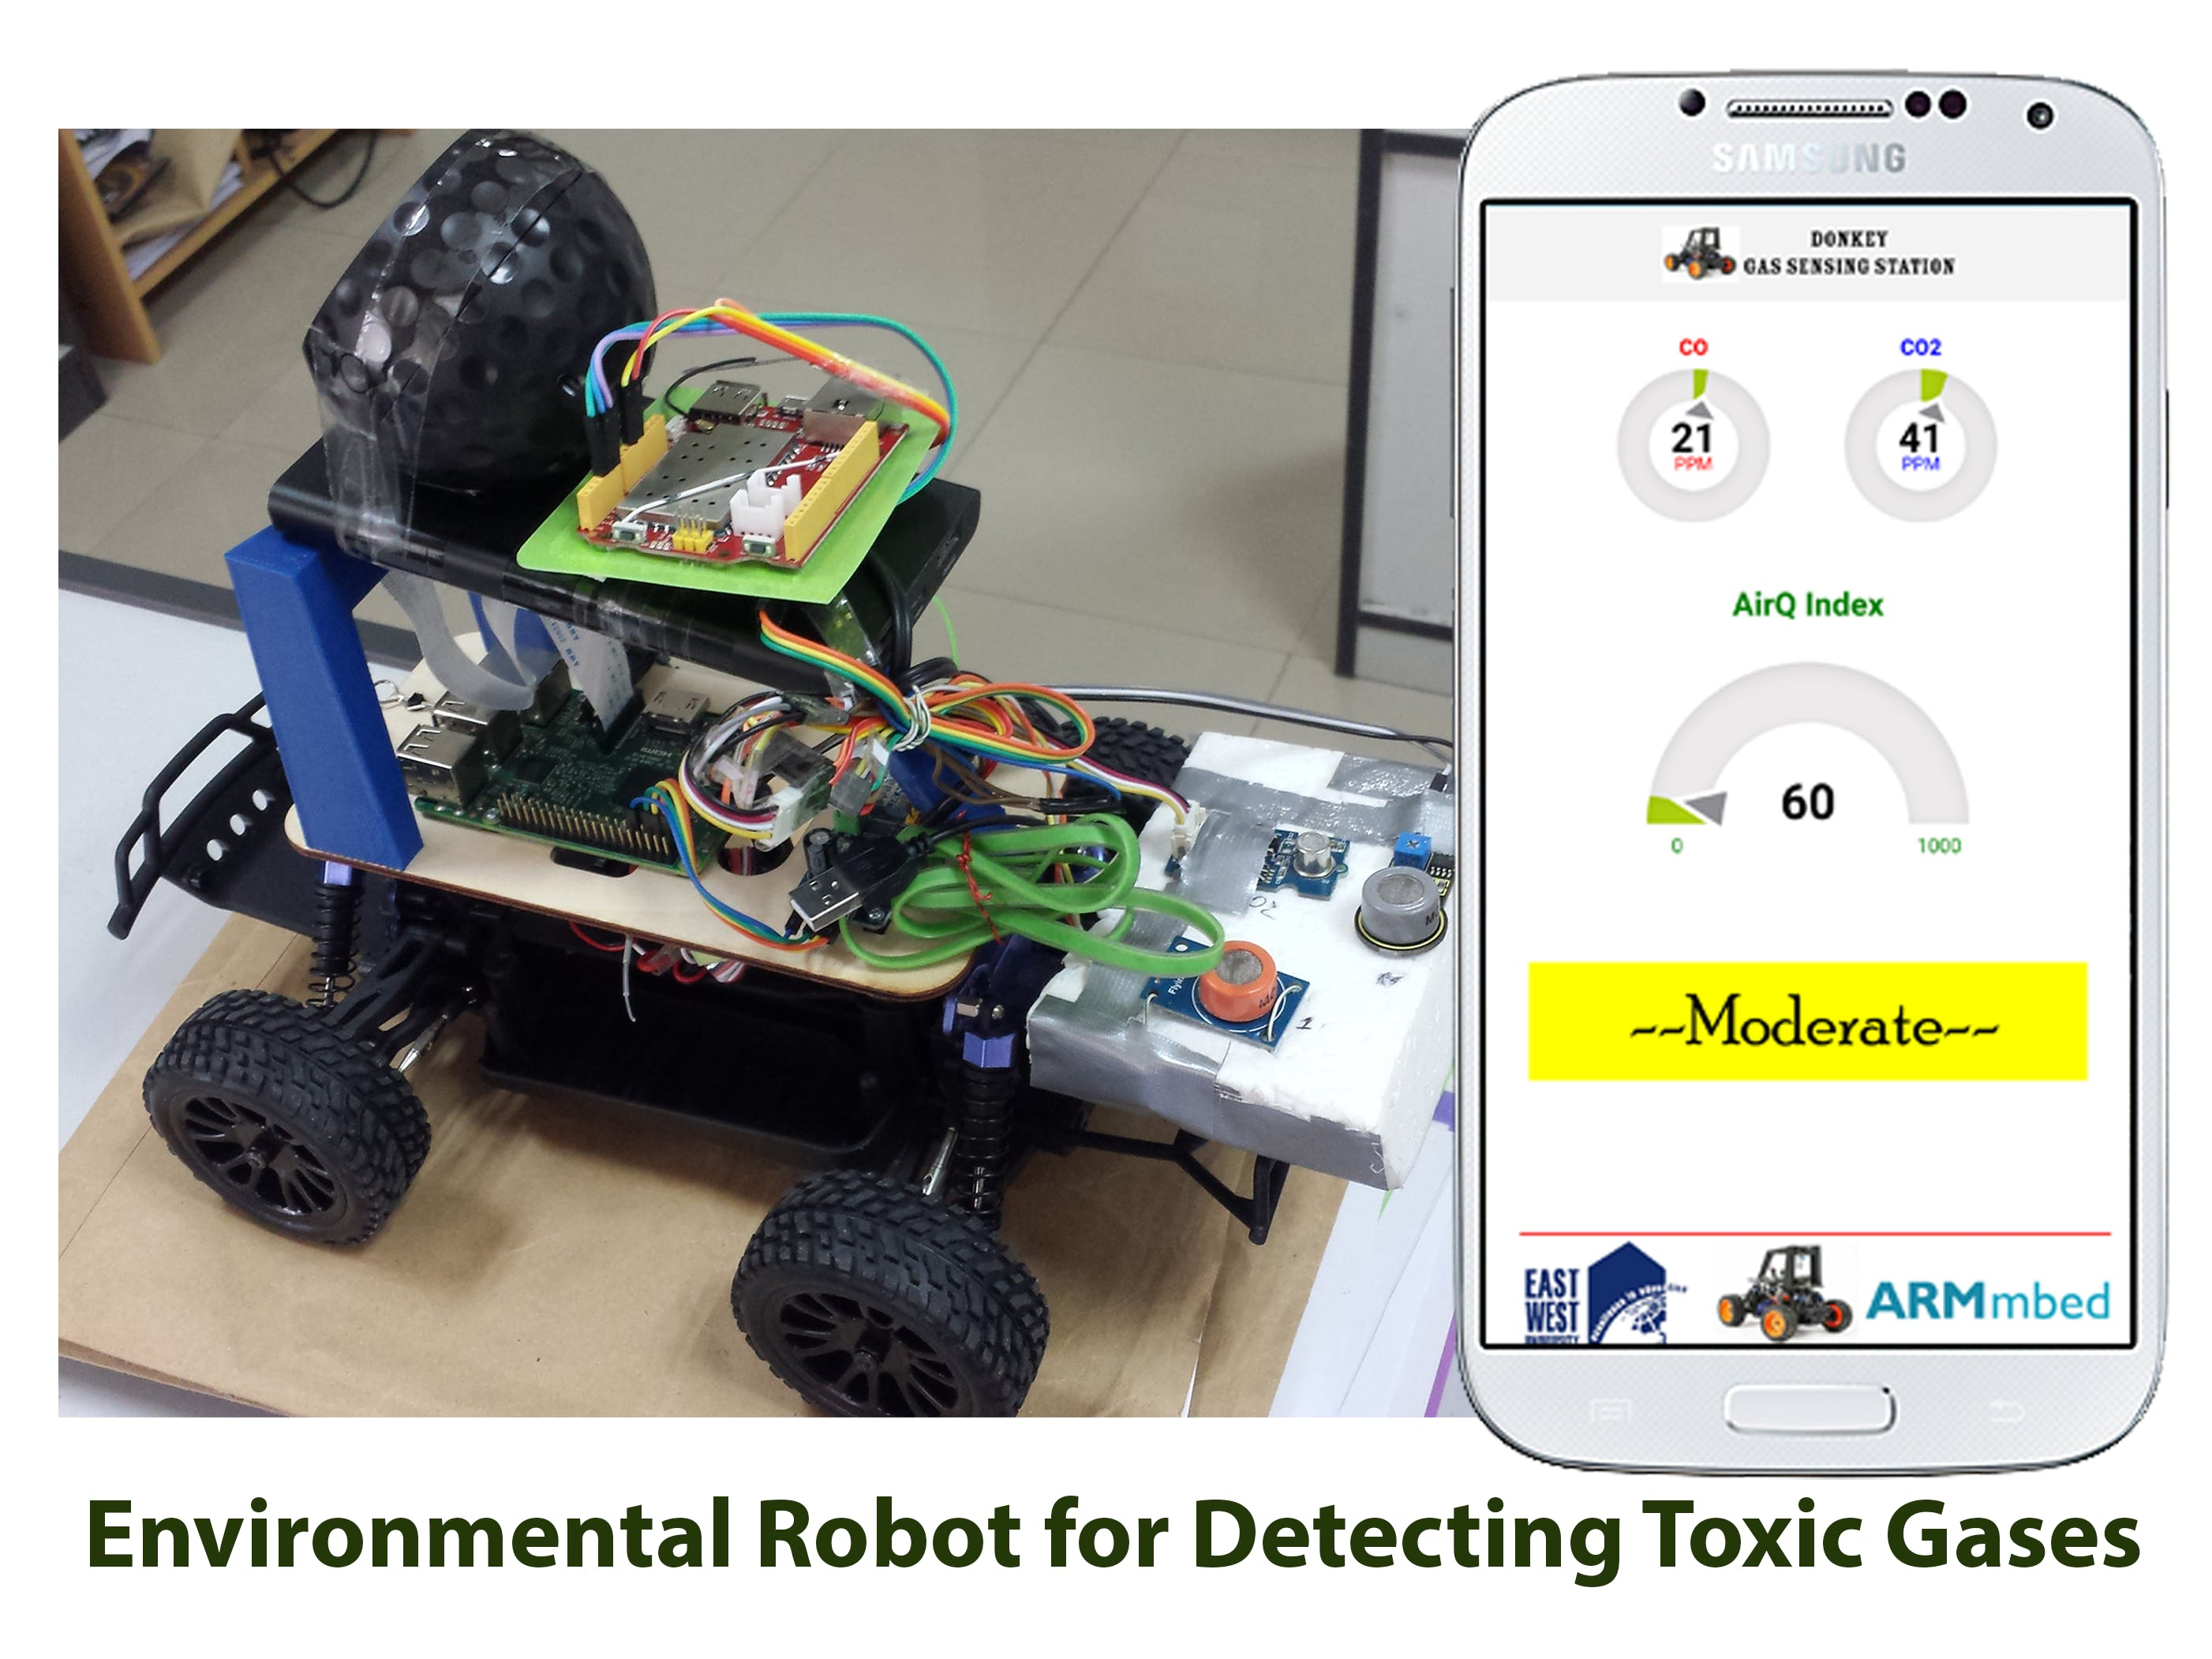 Environmental Robot for Detecting Toxic Gases